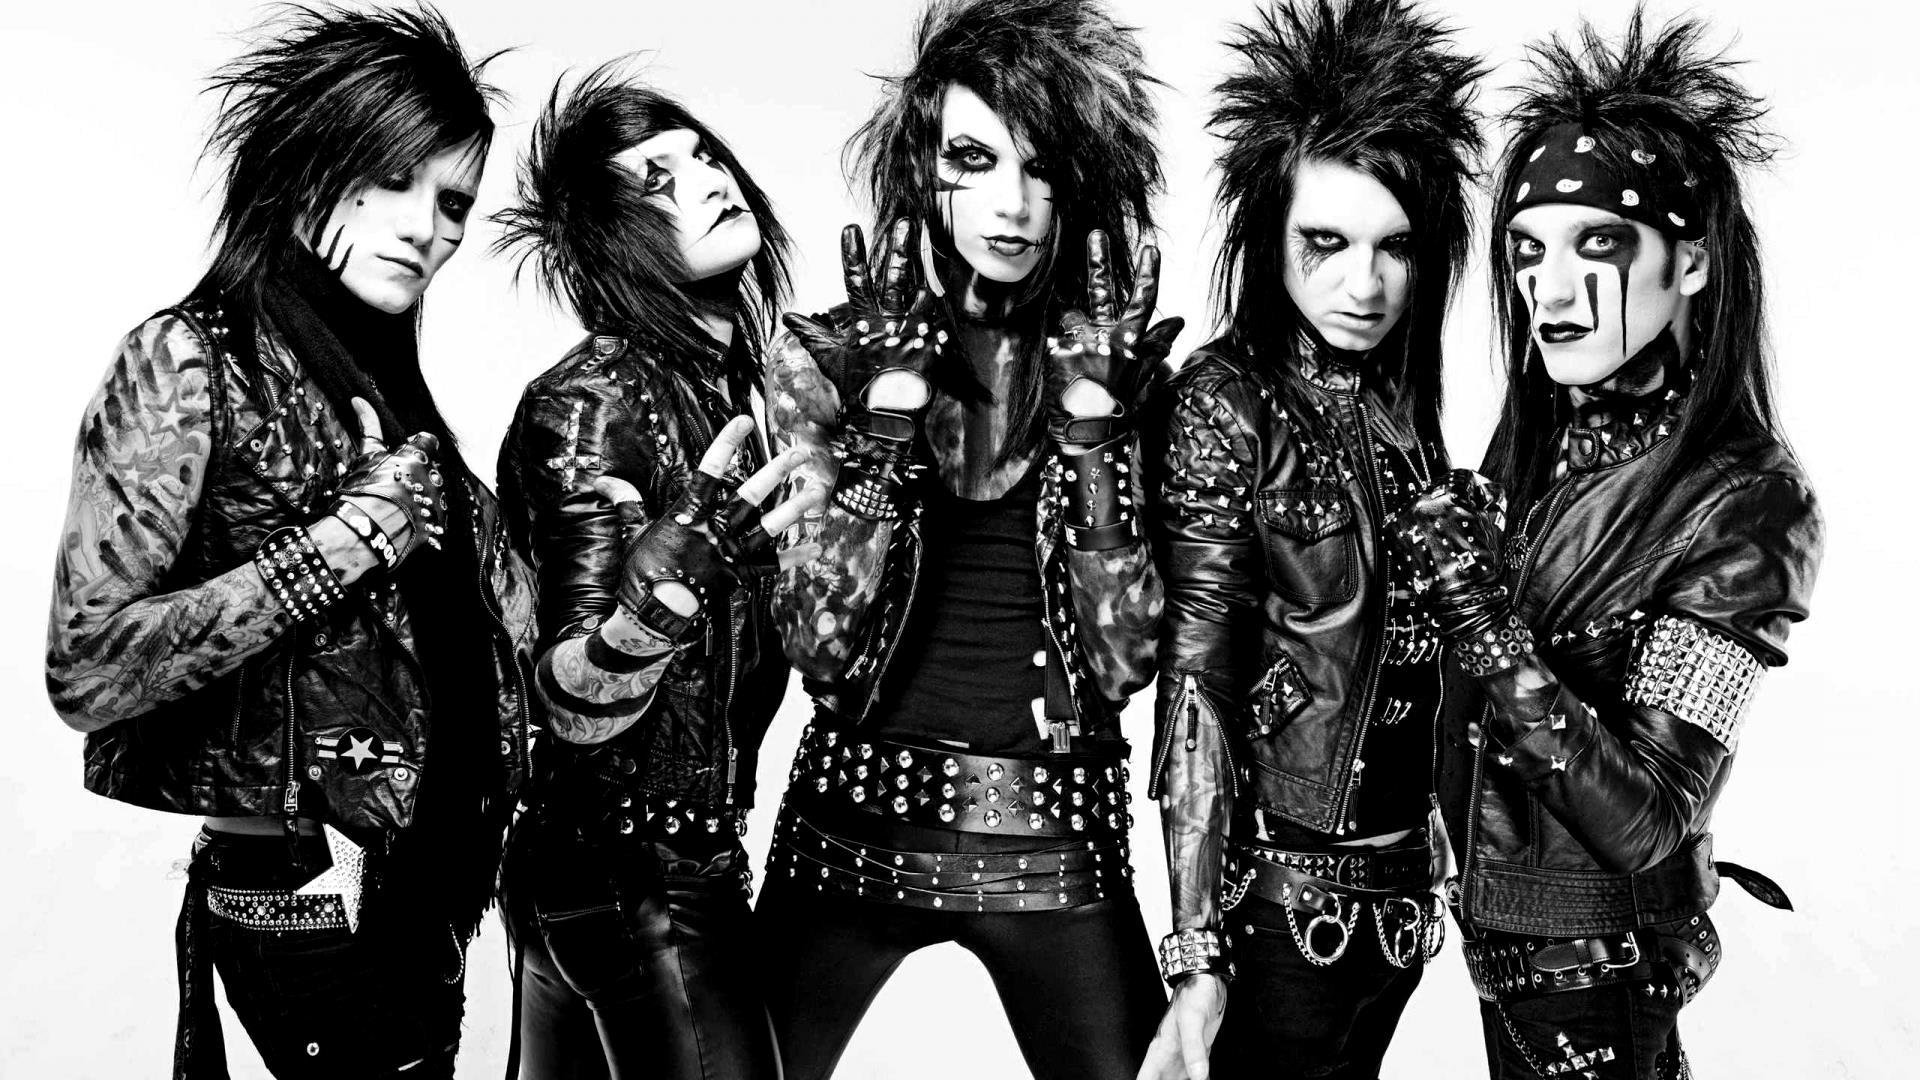 Andy Biersack Quotes Wallpaper Black Veil Brides Wallpaper Hd Pixelstalk Net